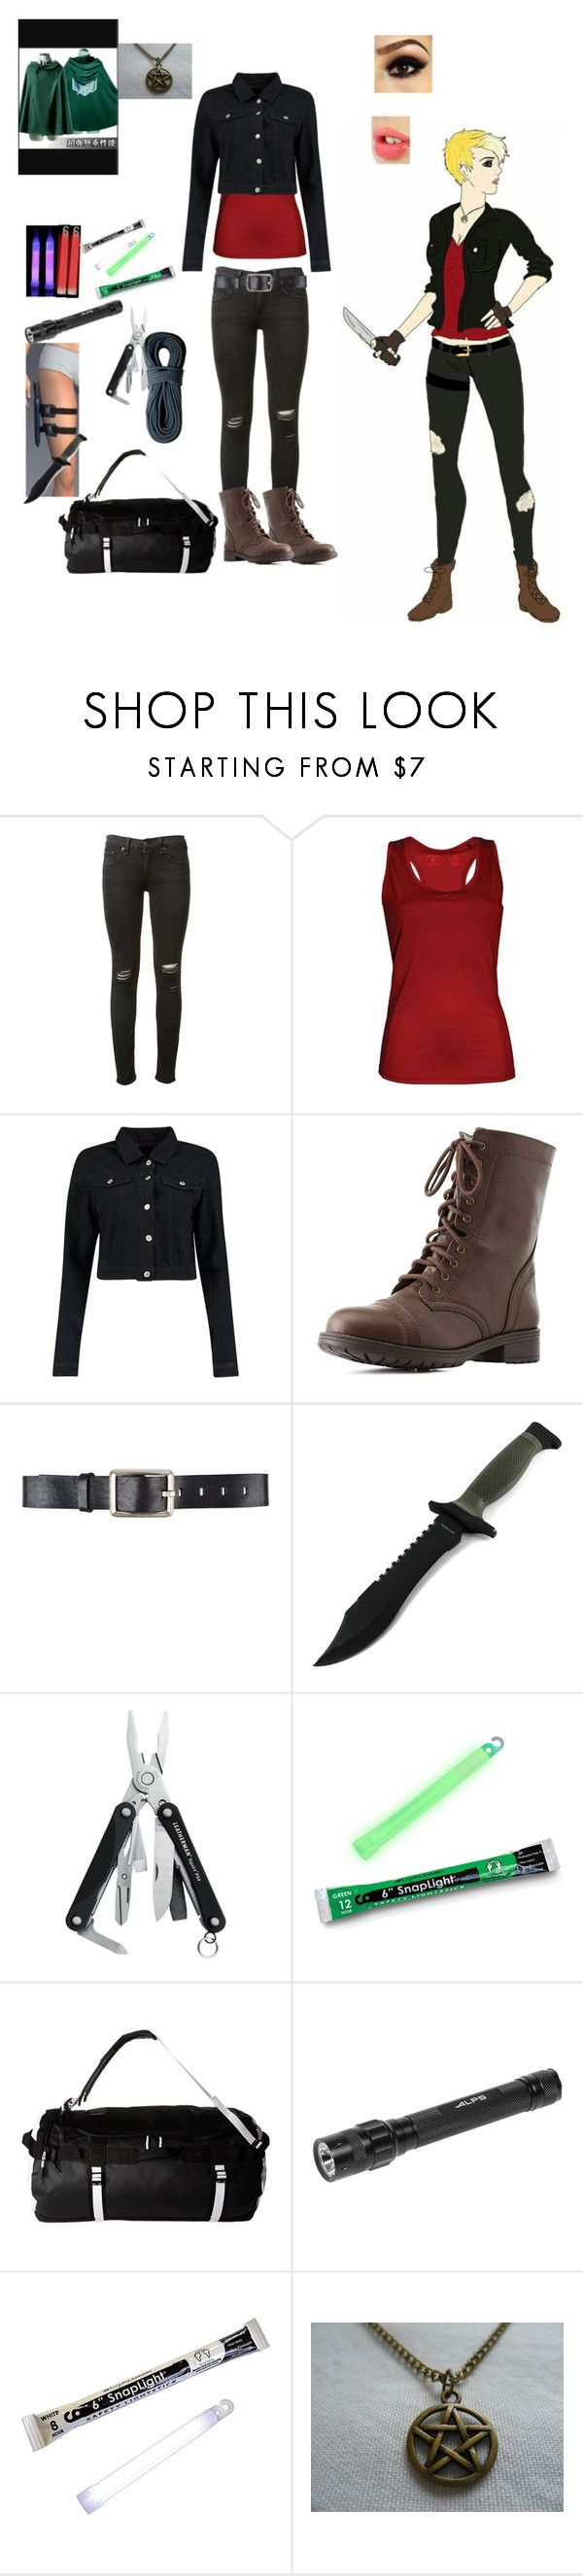 """""""Untitled #50"""" by jack-loves-cake ❤ liked on Polyvore featuring rag & bone, Antigua, Boohoo, Charlotte Russe, Belstaff, Leatherman, SnapLight, The North Face, ALPS Mountaineering and Charlotte Tilbury"""